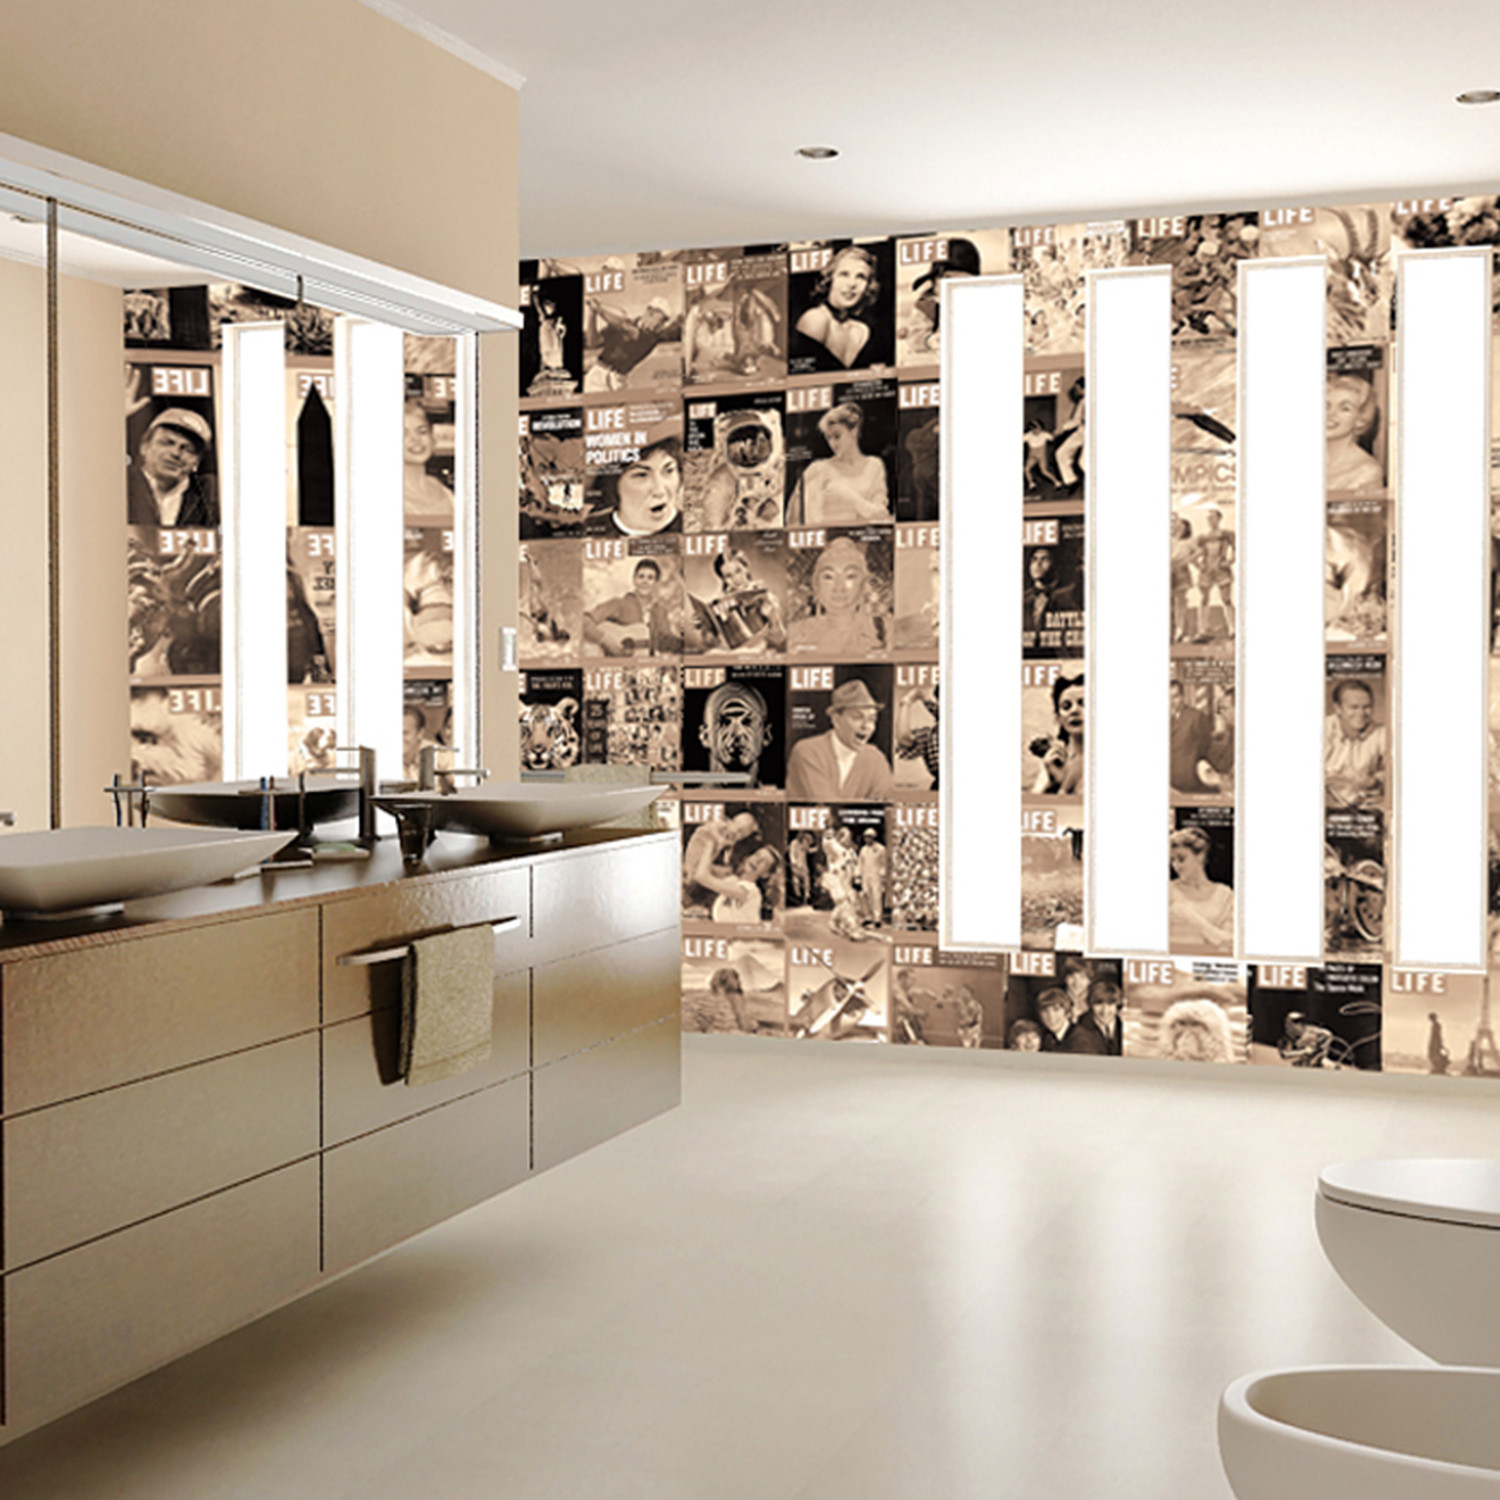 creative collage life icons 1 wall murals touch of modern creative collage life icons